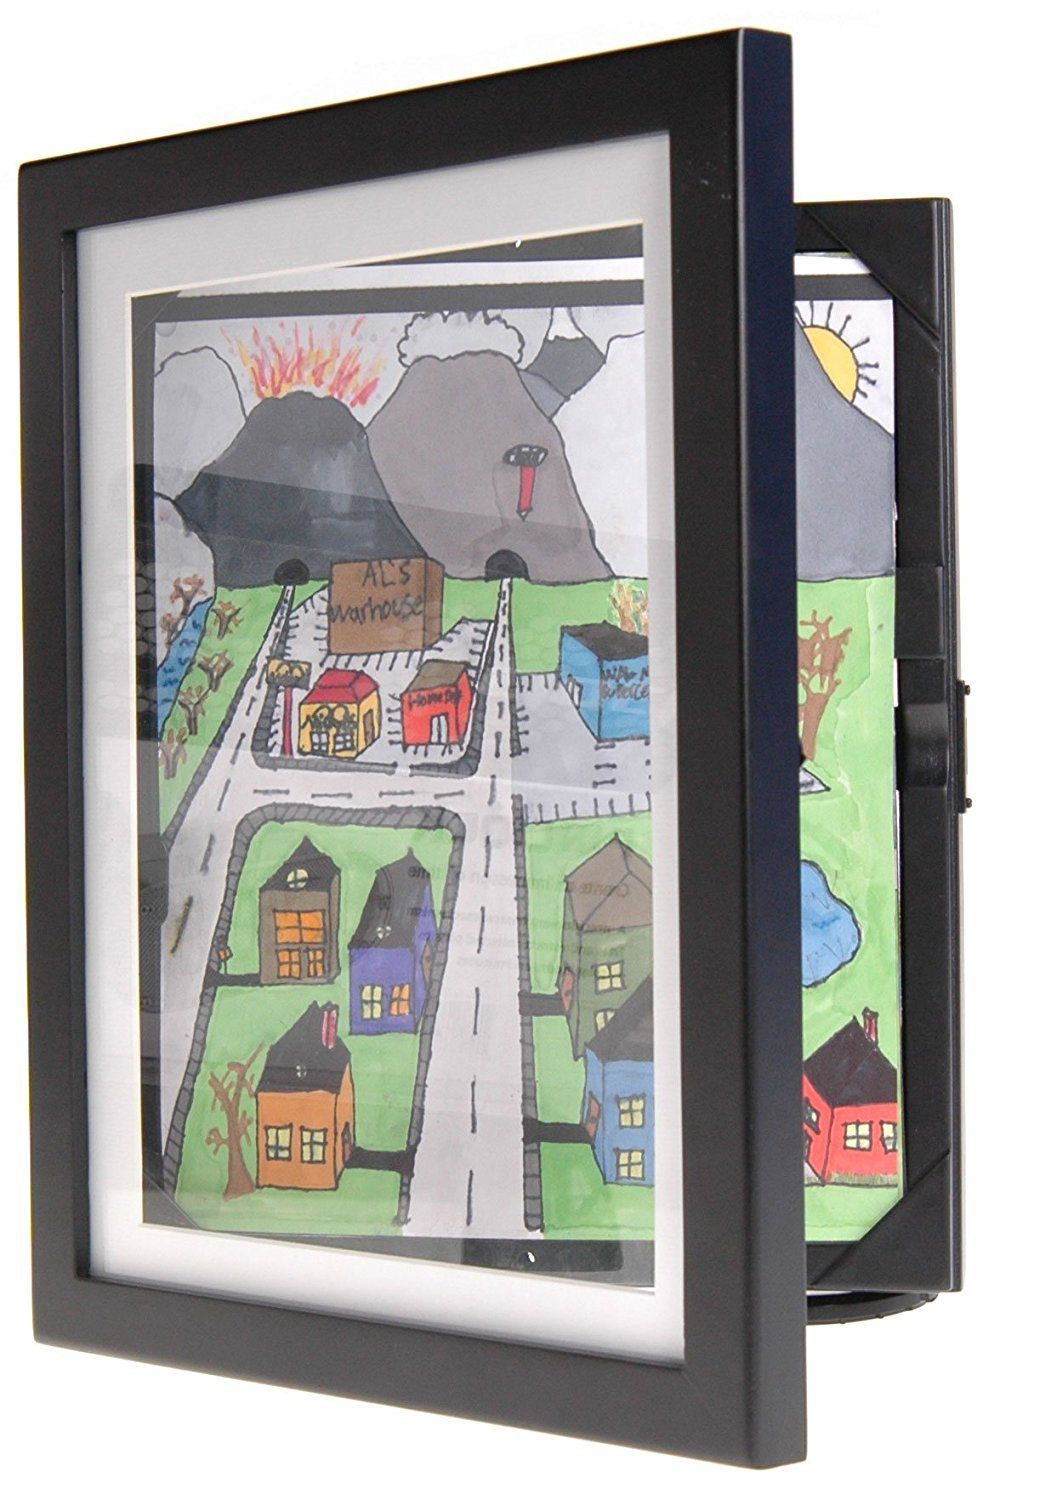 Child Artwork Frame - Display Cabinet Frames And Stores Your Child's Masterpieces - 8.5 x 11 (Black) Lil Davinci DV9x12